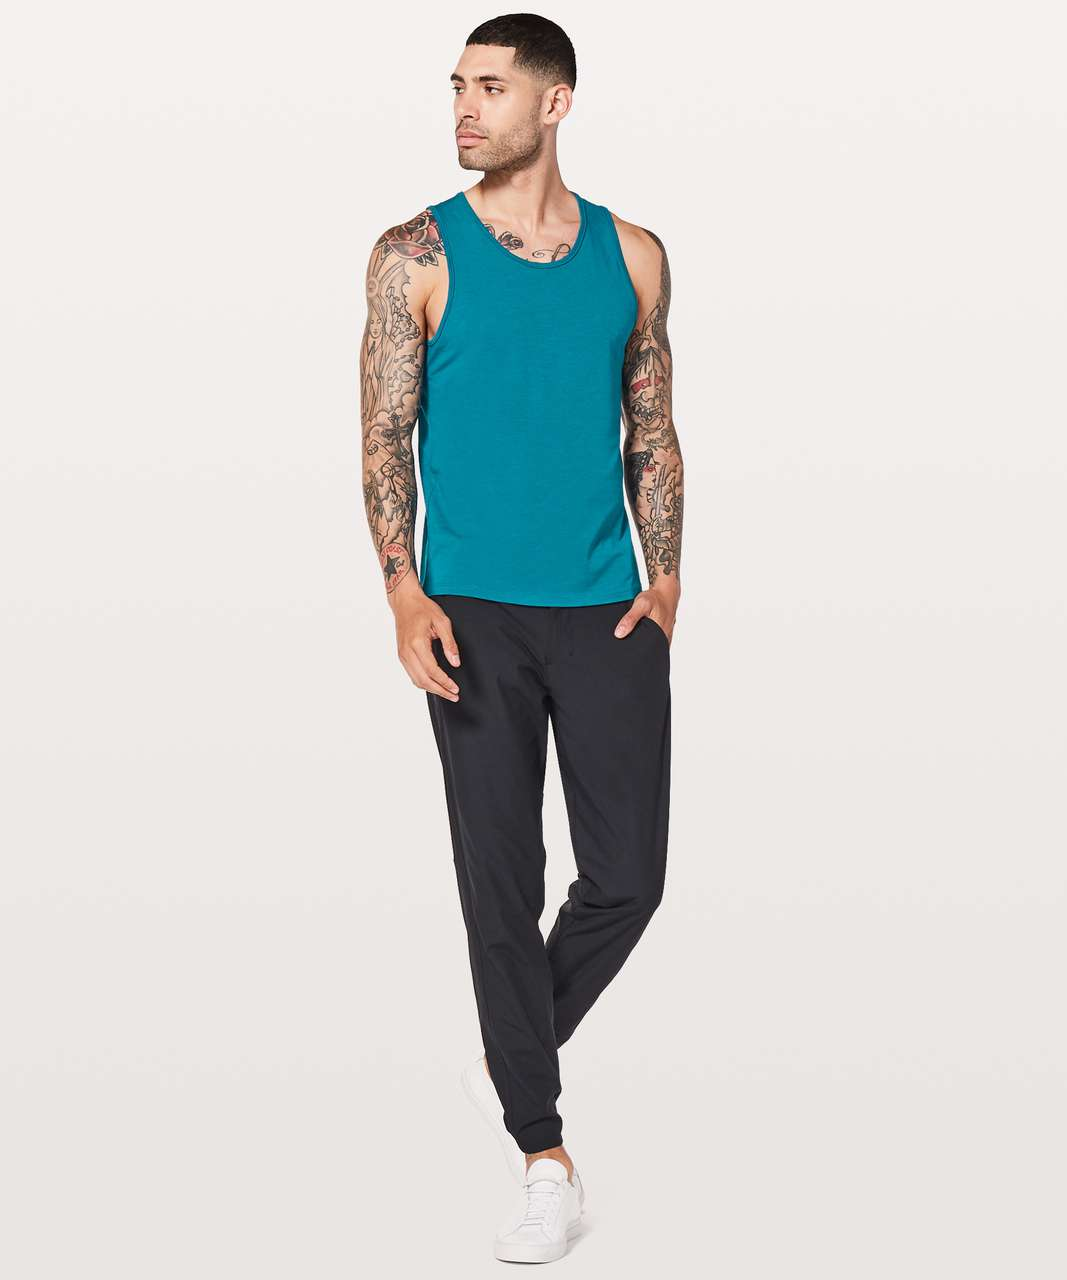 Lululemon 5 Year Basic Tank - Cyprus